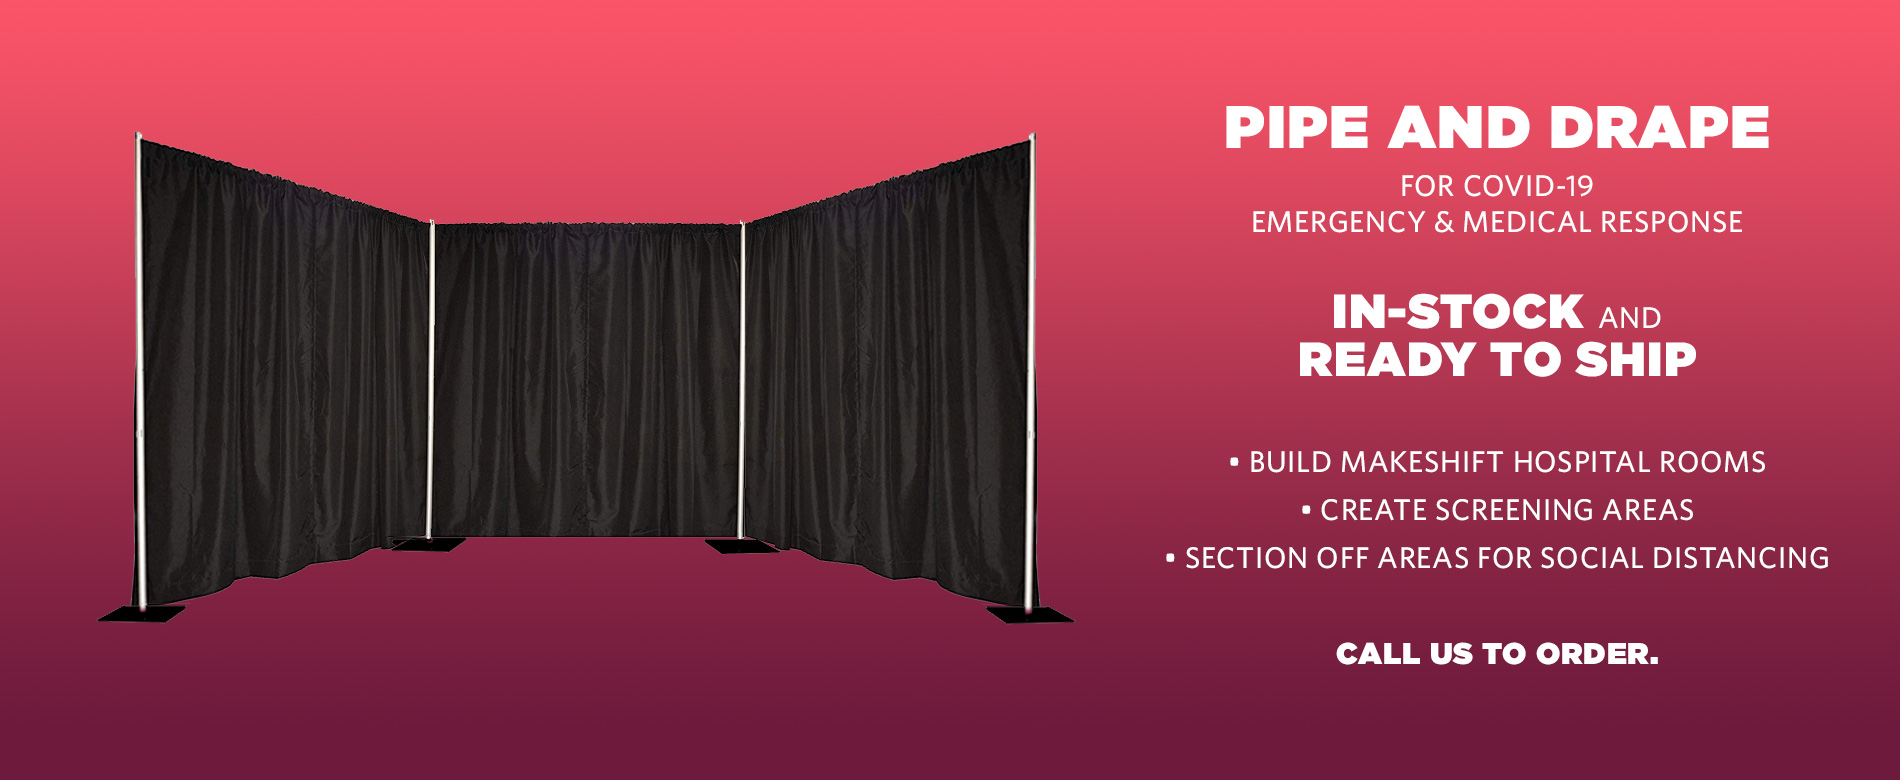 Pipe and Drape Dividers for Emergency and Medical Response to COVID-19